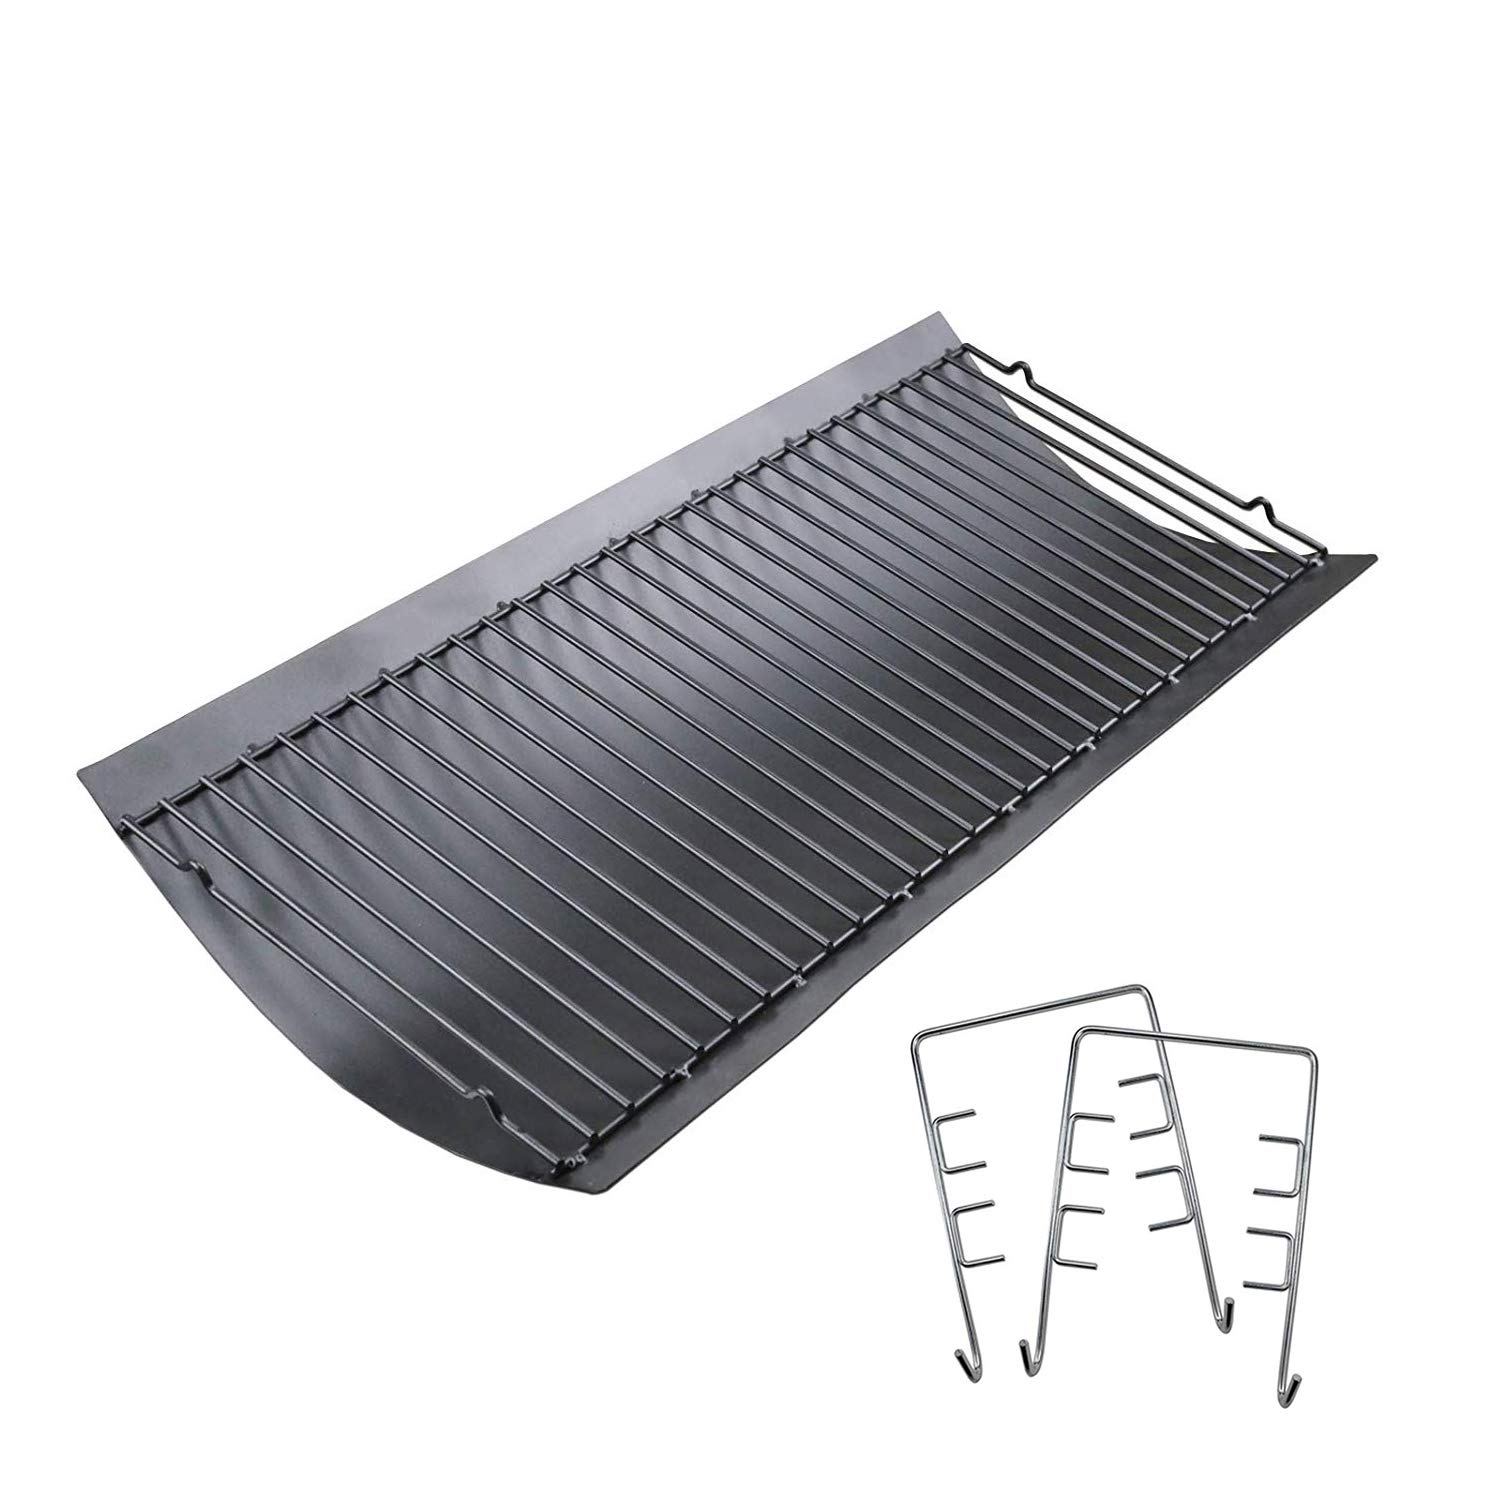 Uniflasy 27 Inches Ash Pan/Drip Pan for Chargriller 1224, 1324, 2121, 2222, 2727, 2828, 2929 Charcoal Grills, Charbroil 17302056 Grill Grates Replacement Part with 2pcs Fire Grate Hanger by Uniflasy